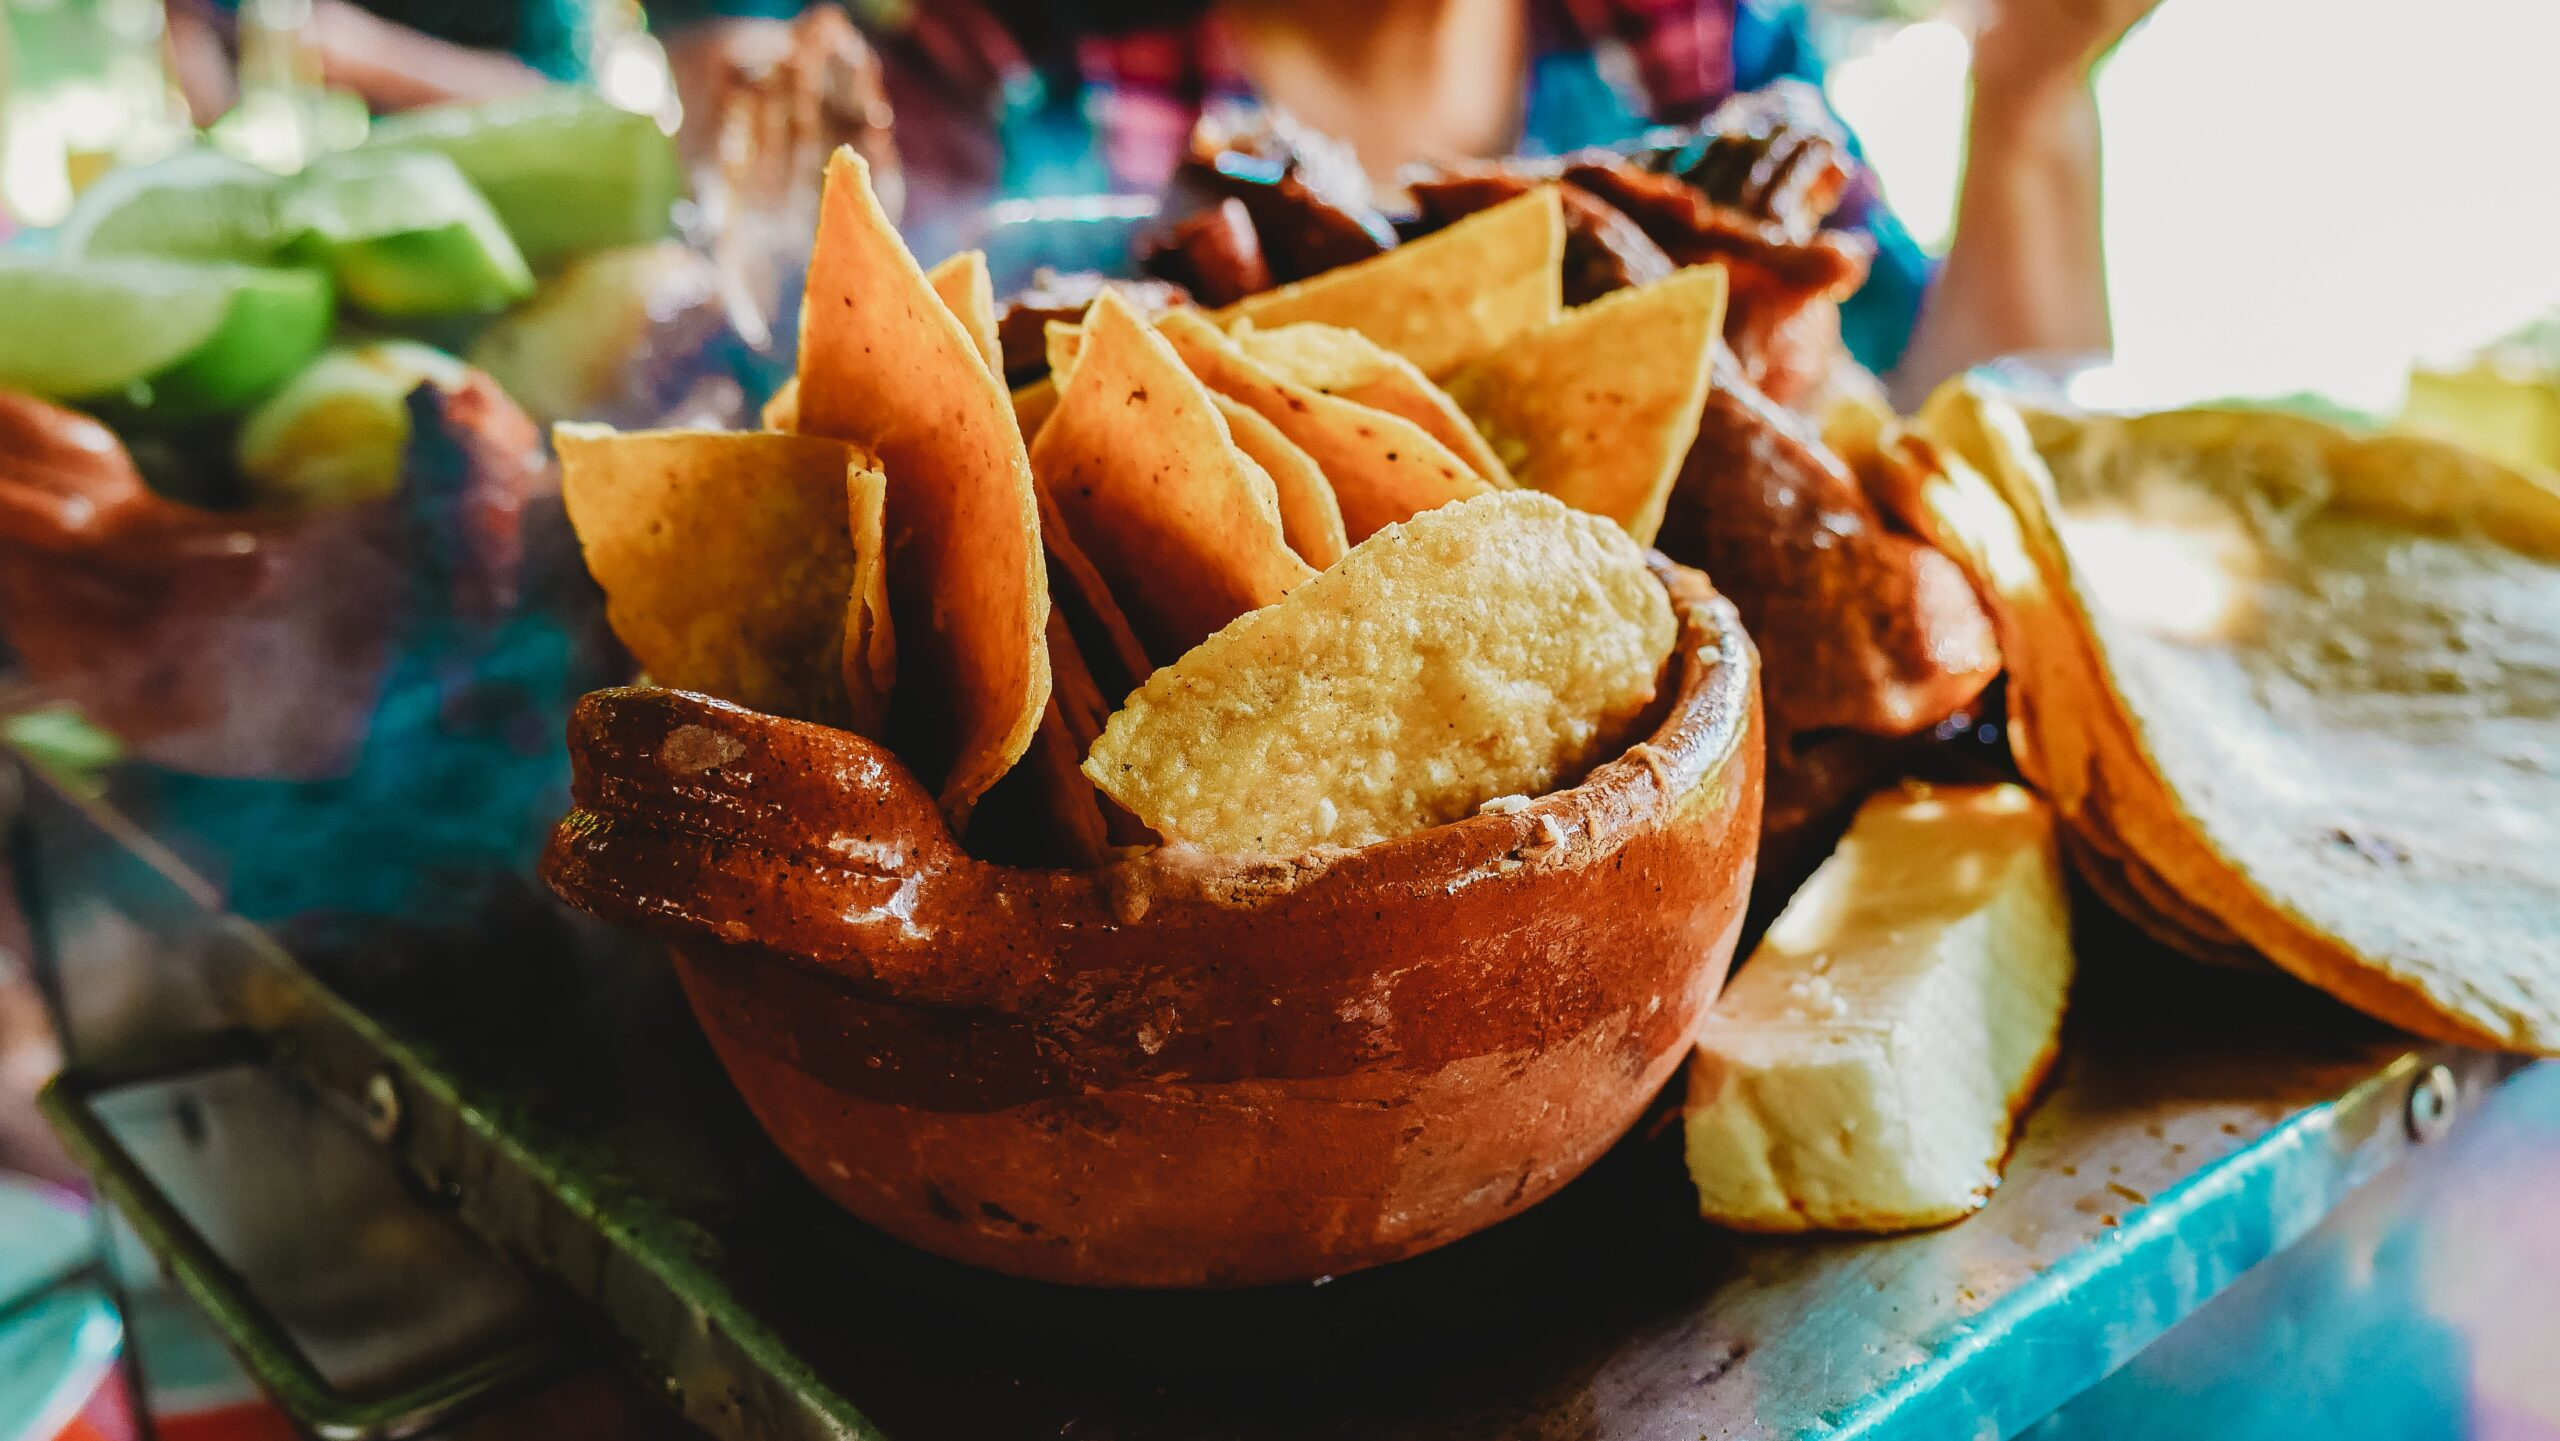 Let's Talk Tortilla Chips: An International Snack Born In Mexico